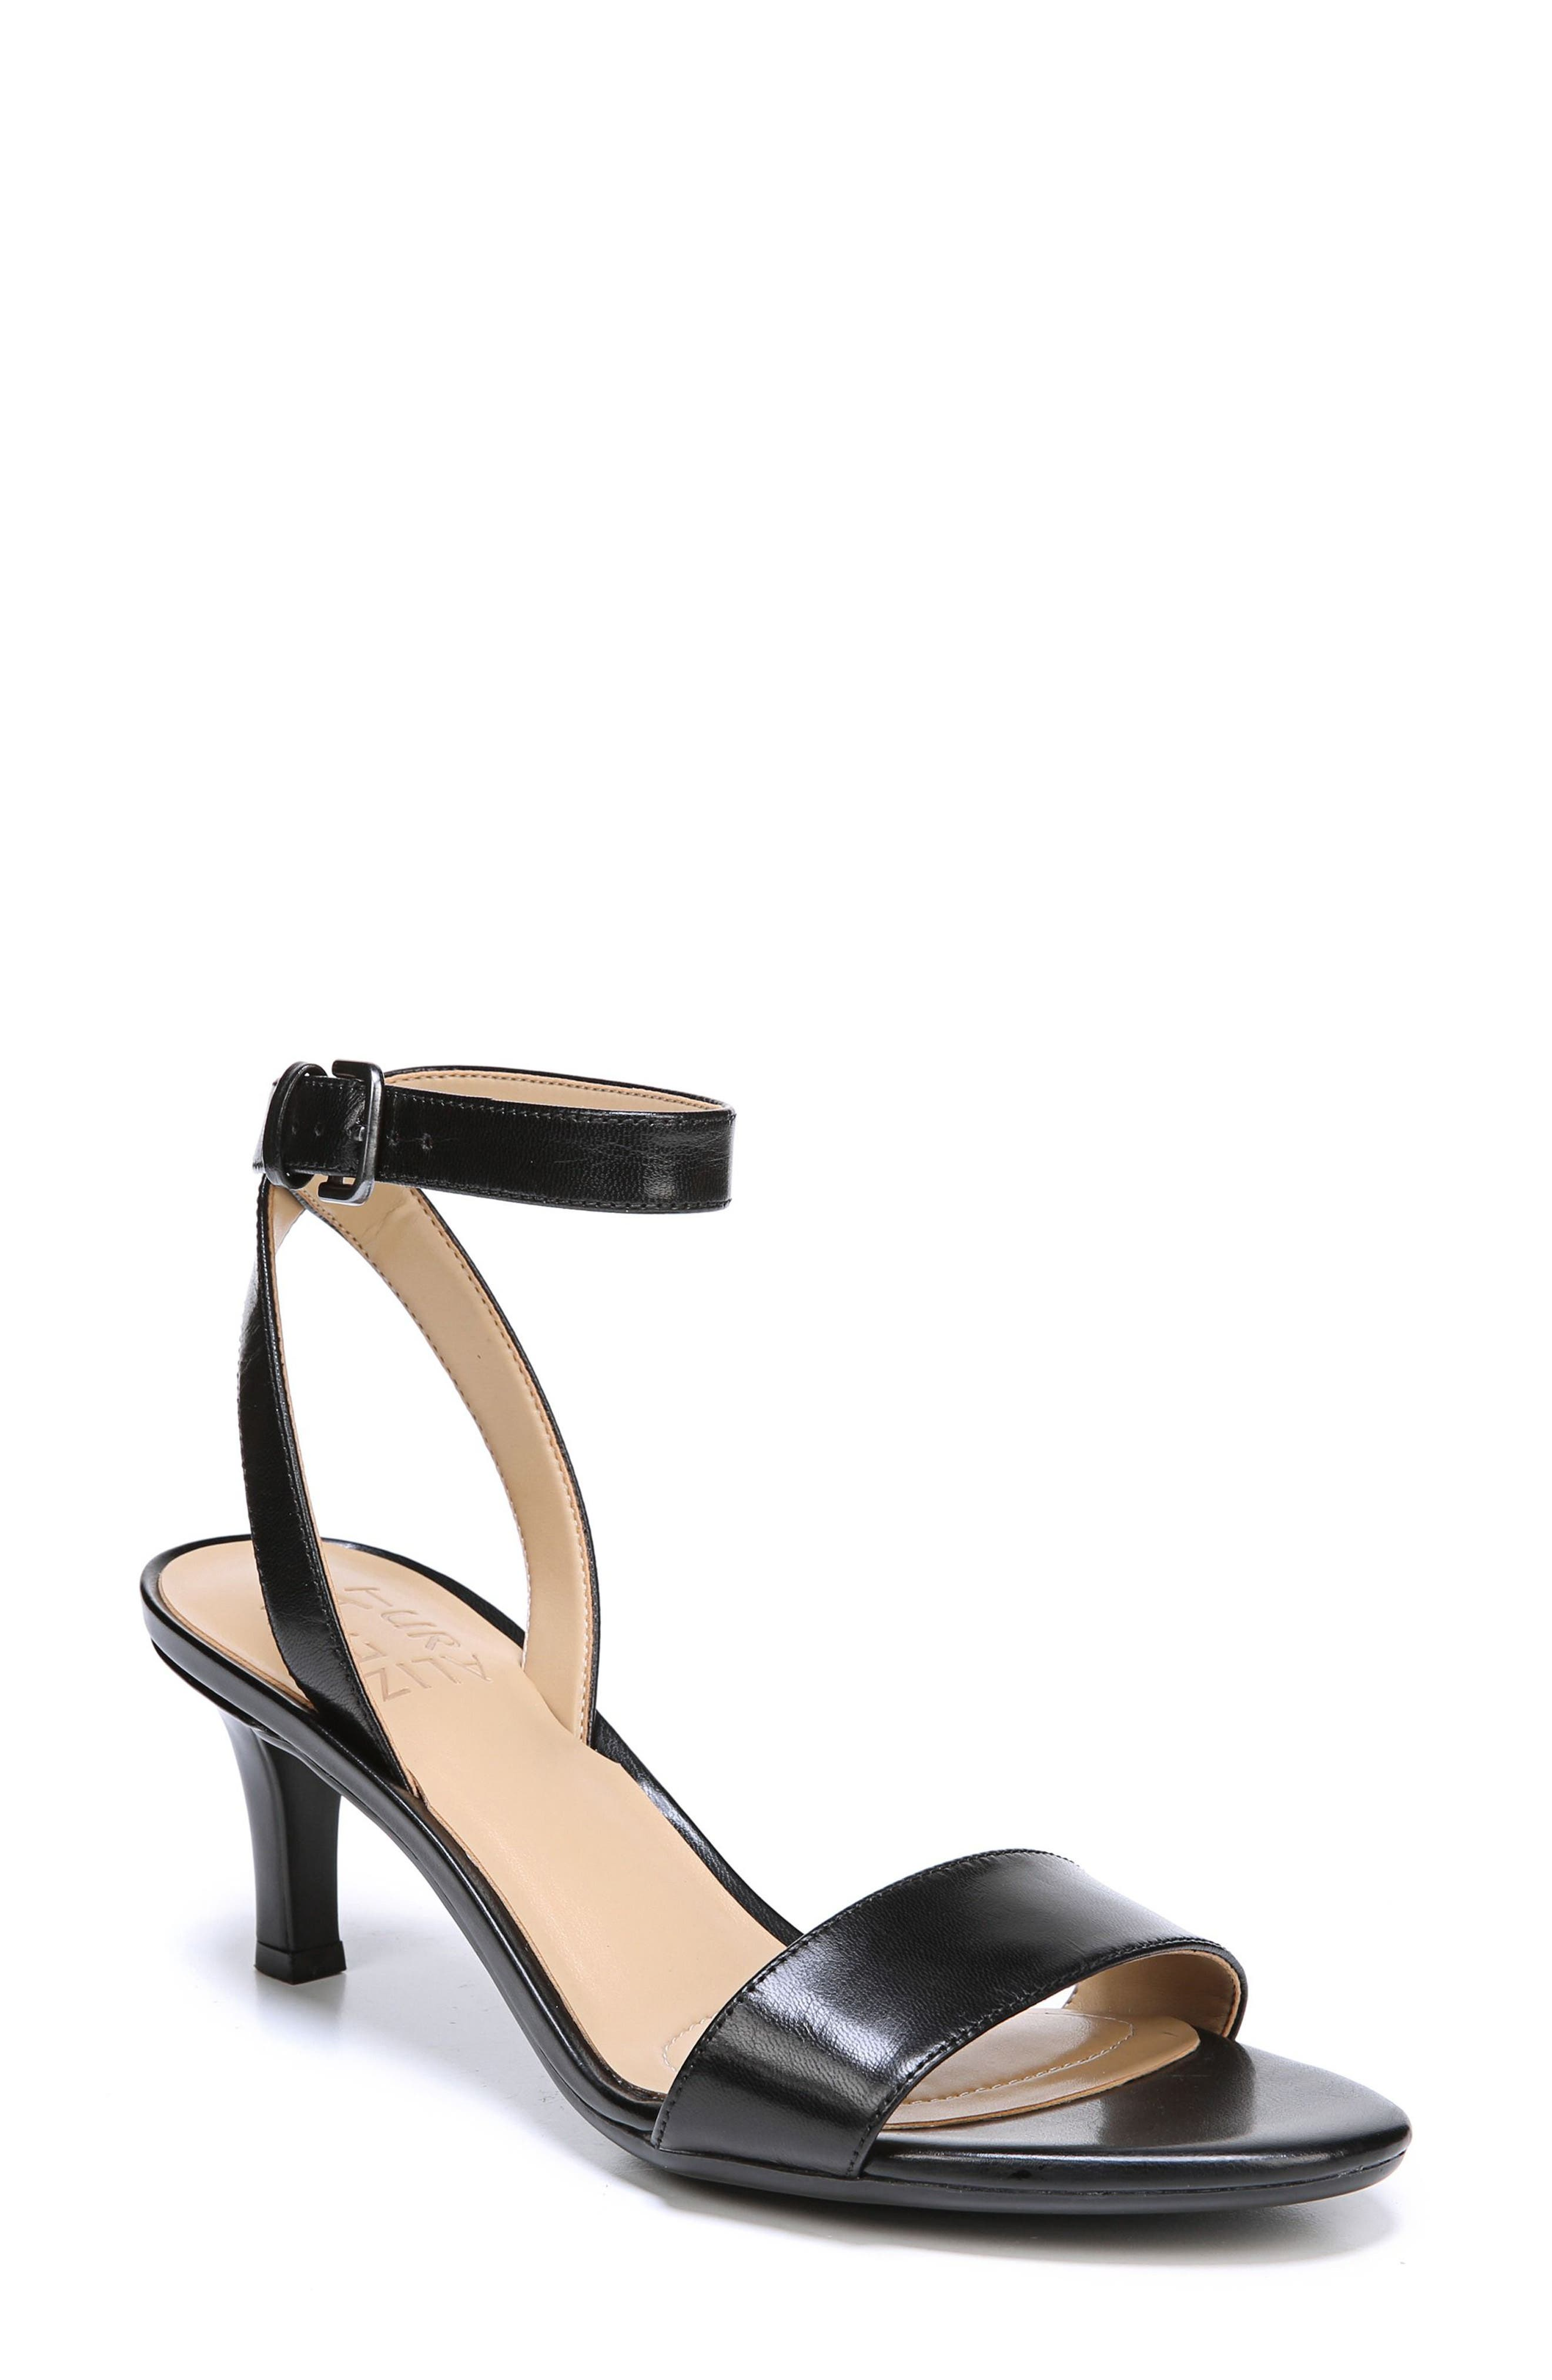 Tinda Sandal,                             Main thumbnail 1, color,                             BLACK LEATHER